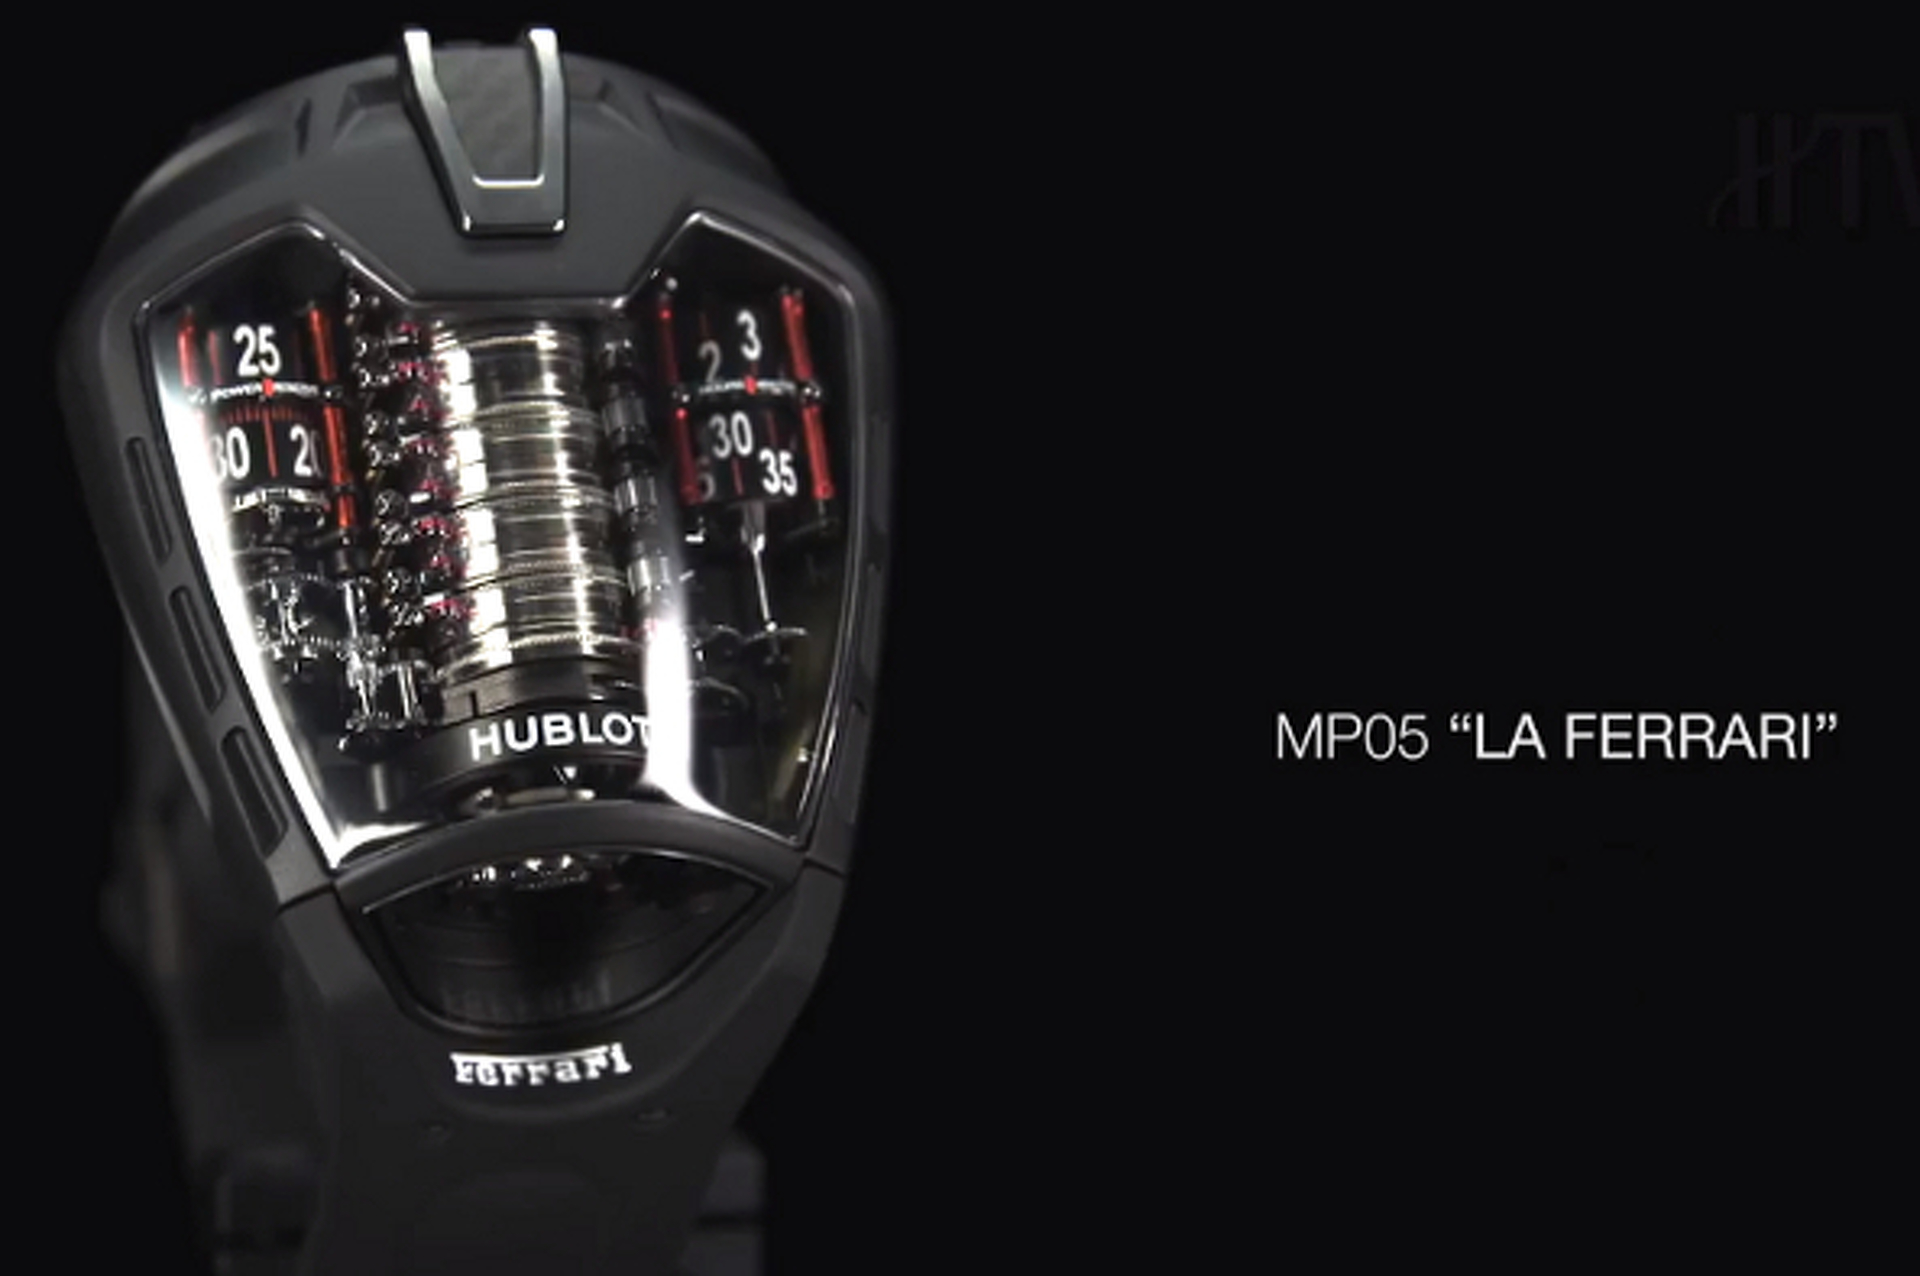 LaFerrari Watch by Hubolt is Equally as Exclusive [W/Video]